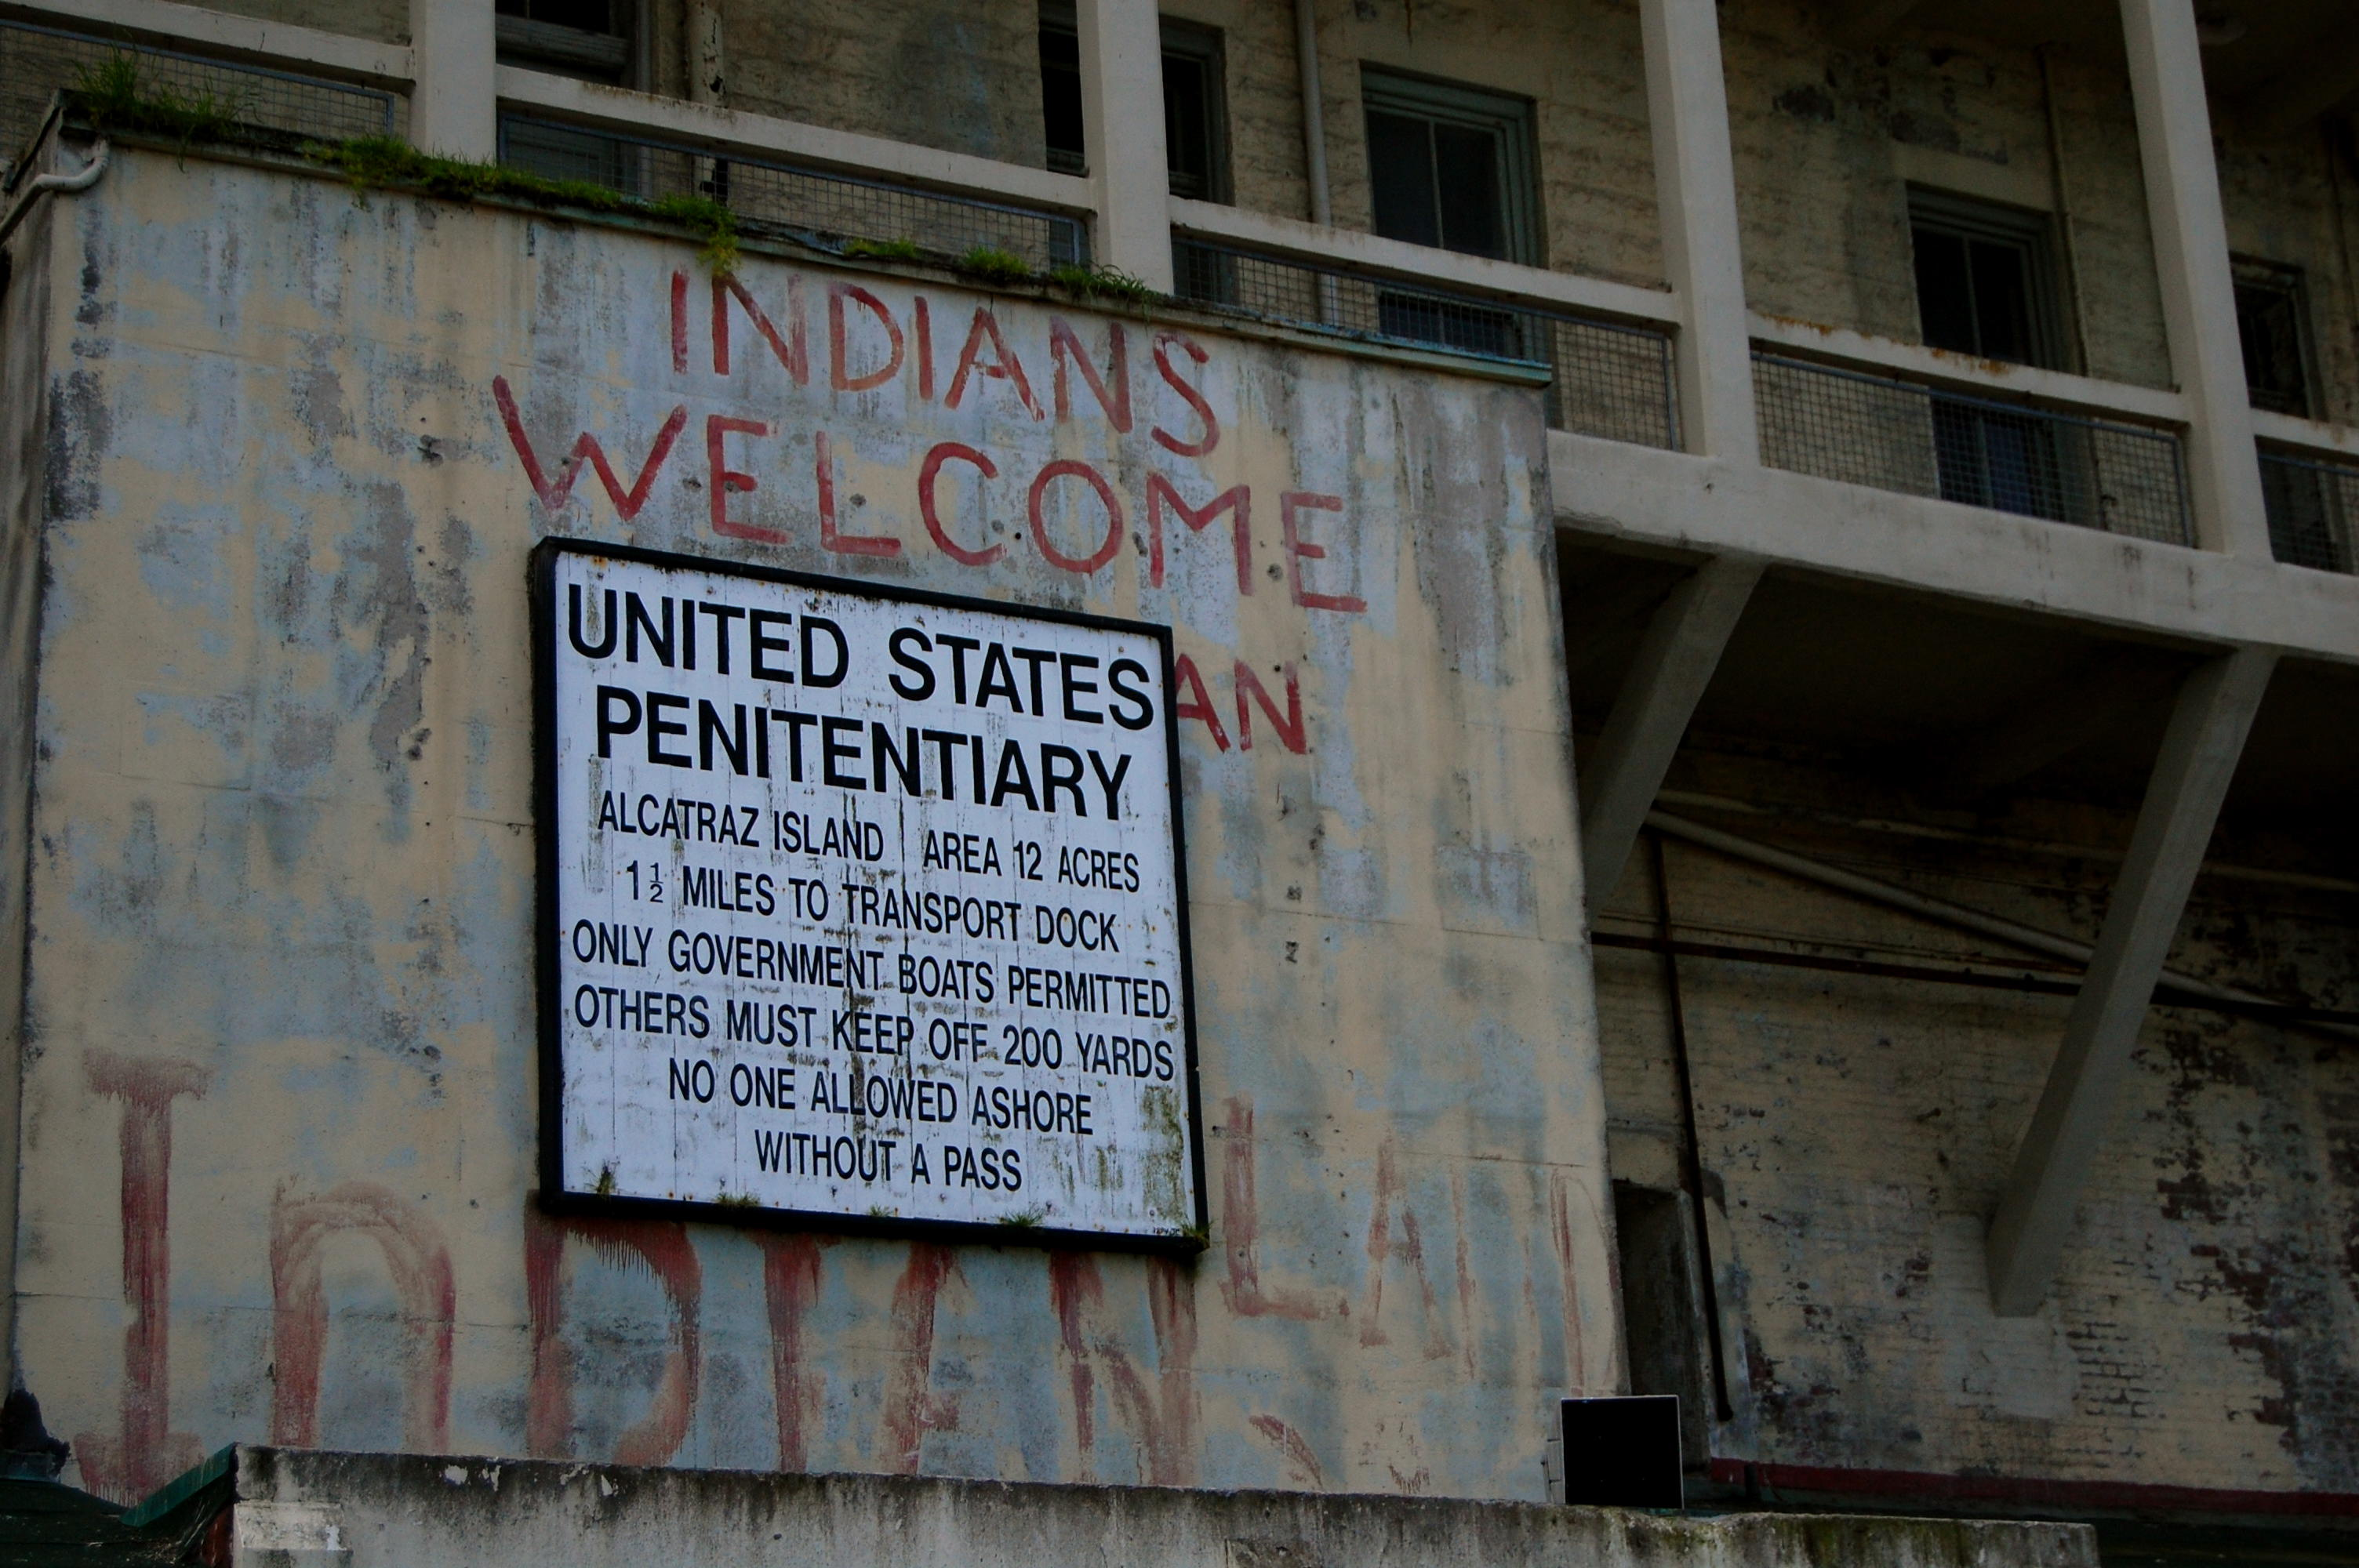 Entrance sign at Alcatraz